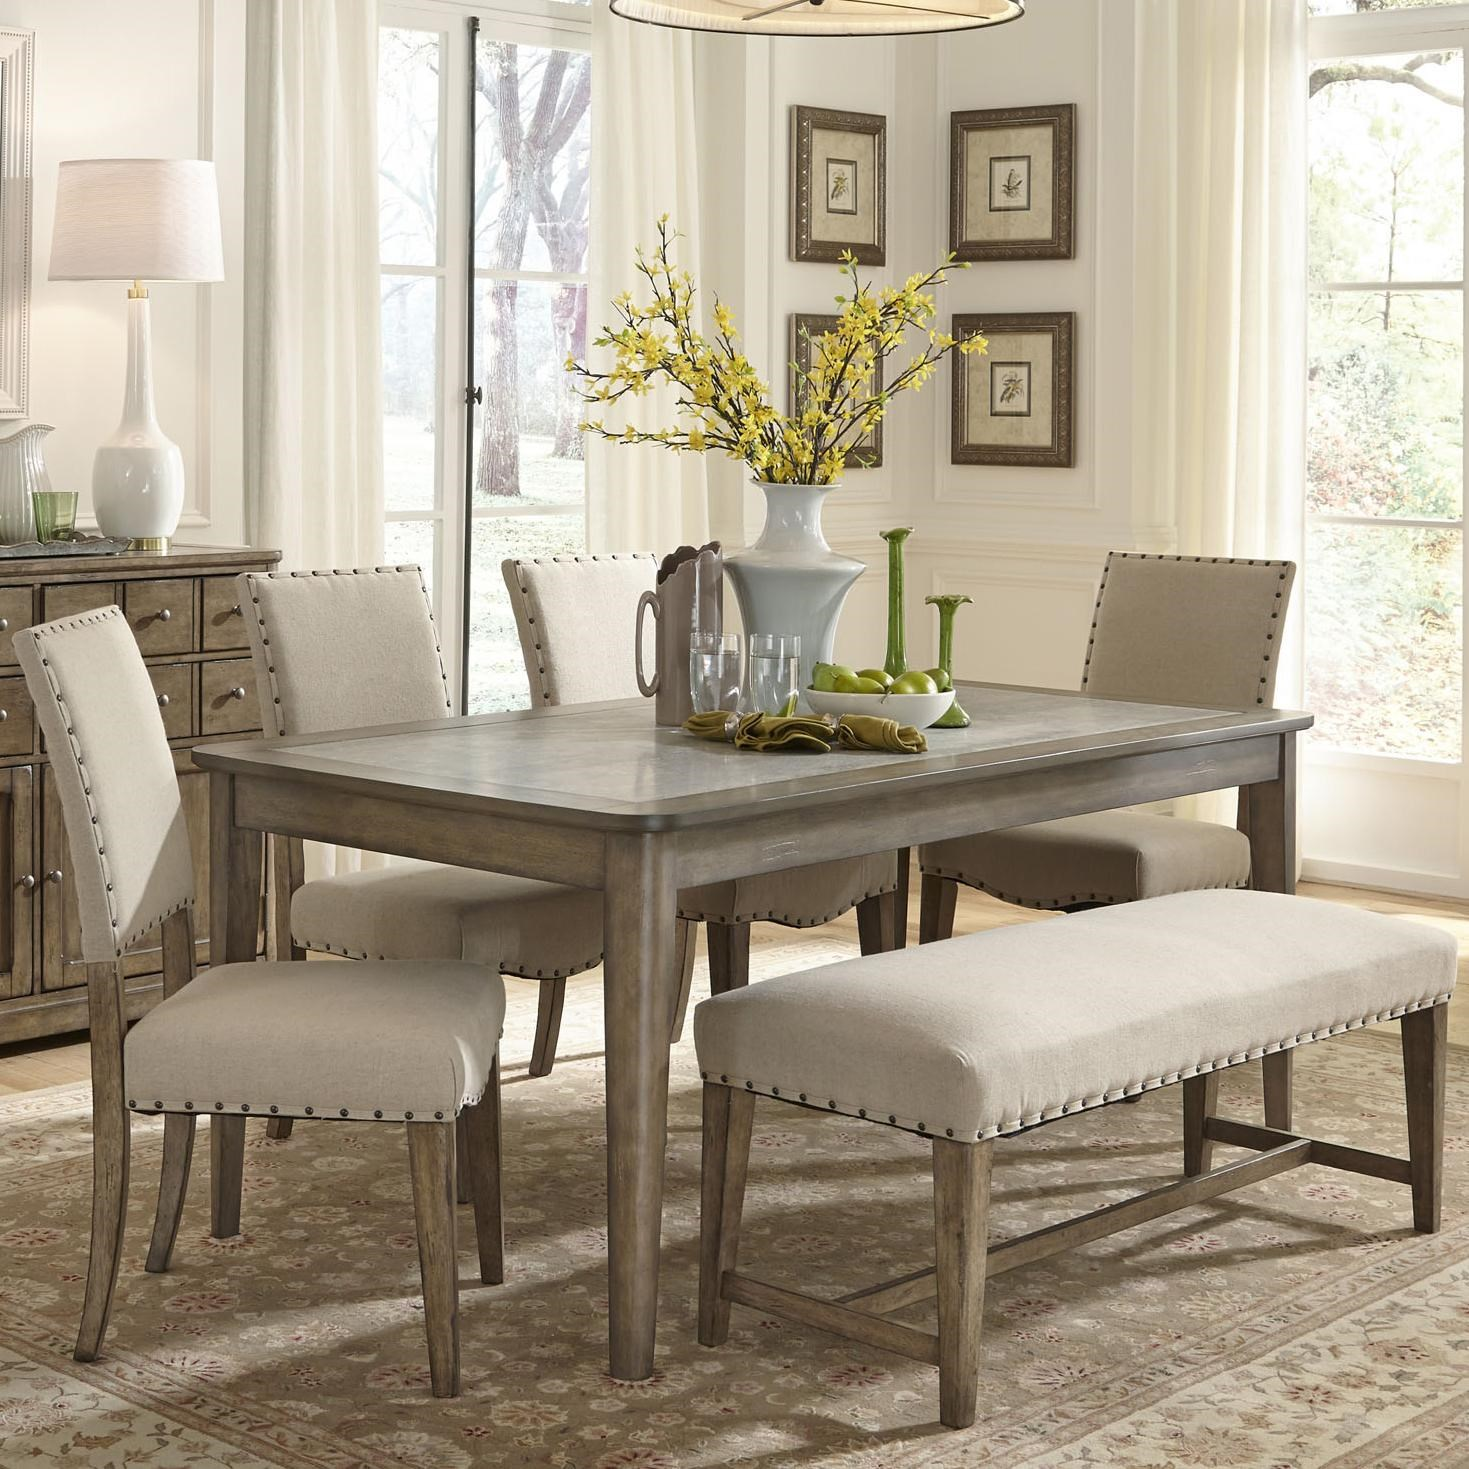 Perfect Dining Table Set With Bench. Liberty Furniture Weatherford Rustic Casual 6  Piece Dining Table And